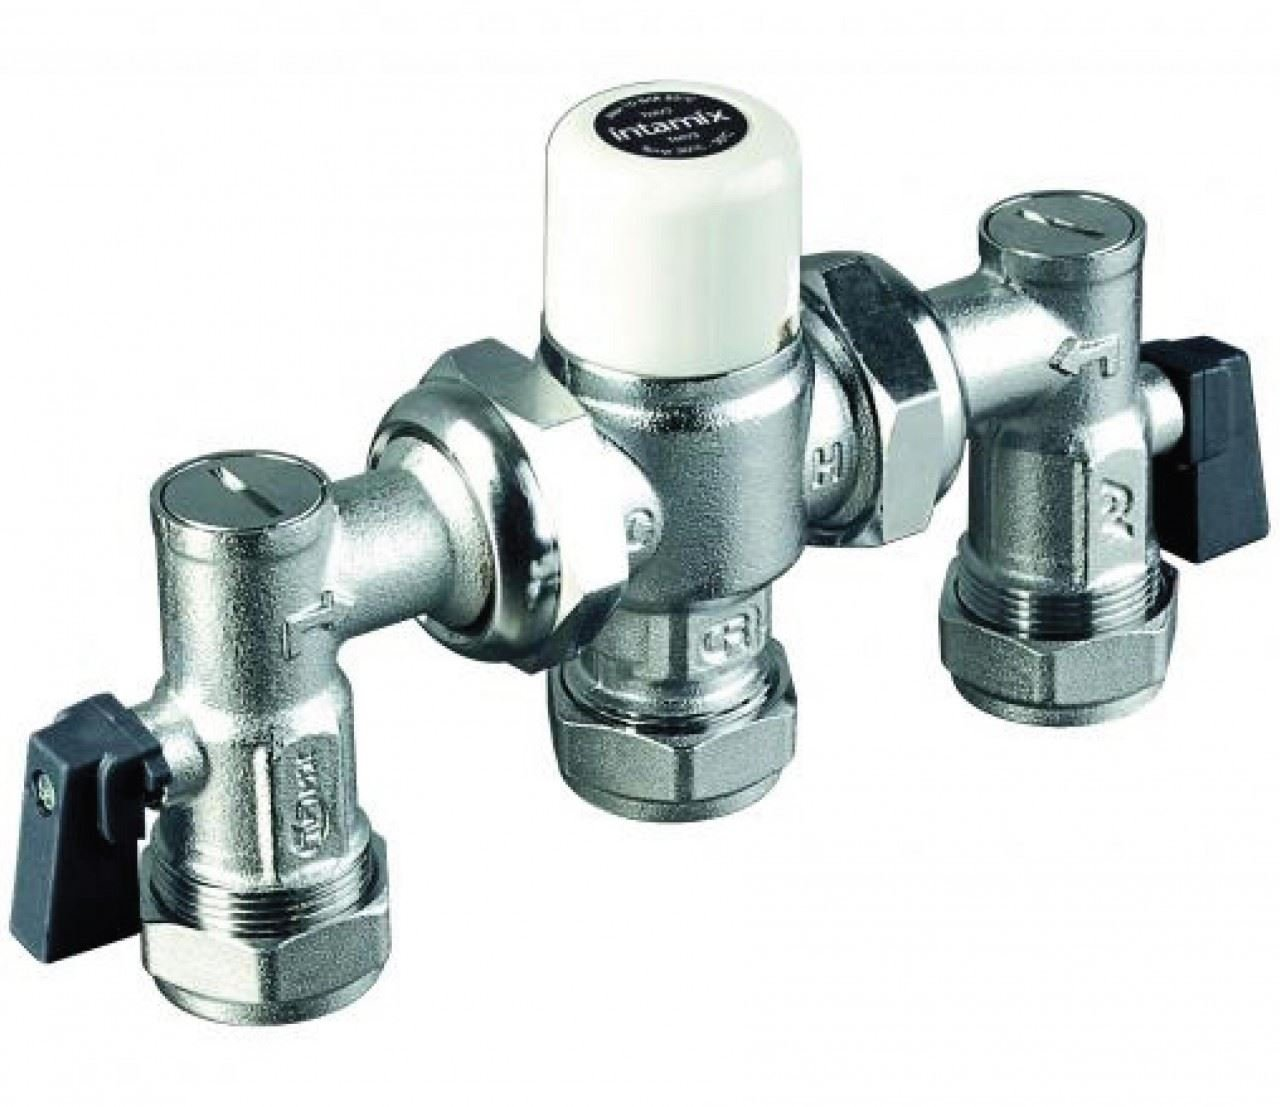 INTAMIX 15mm Thermostatic Mixer with Valves - 400MX15CP: Amazon.co ...